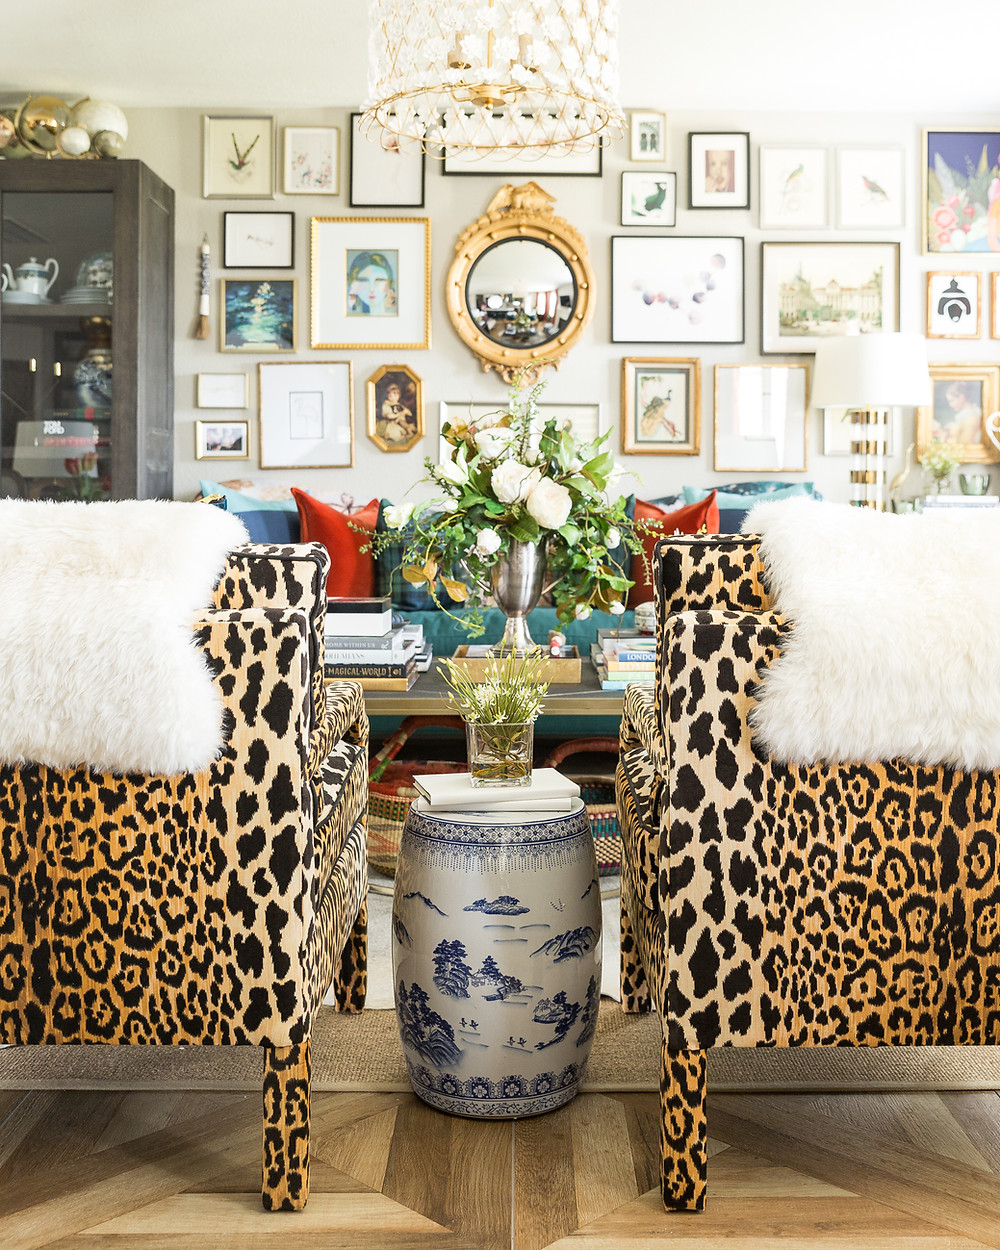 Living room with cheetah print chairs